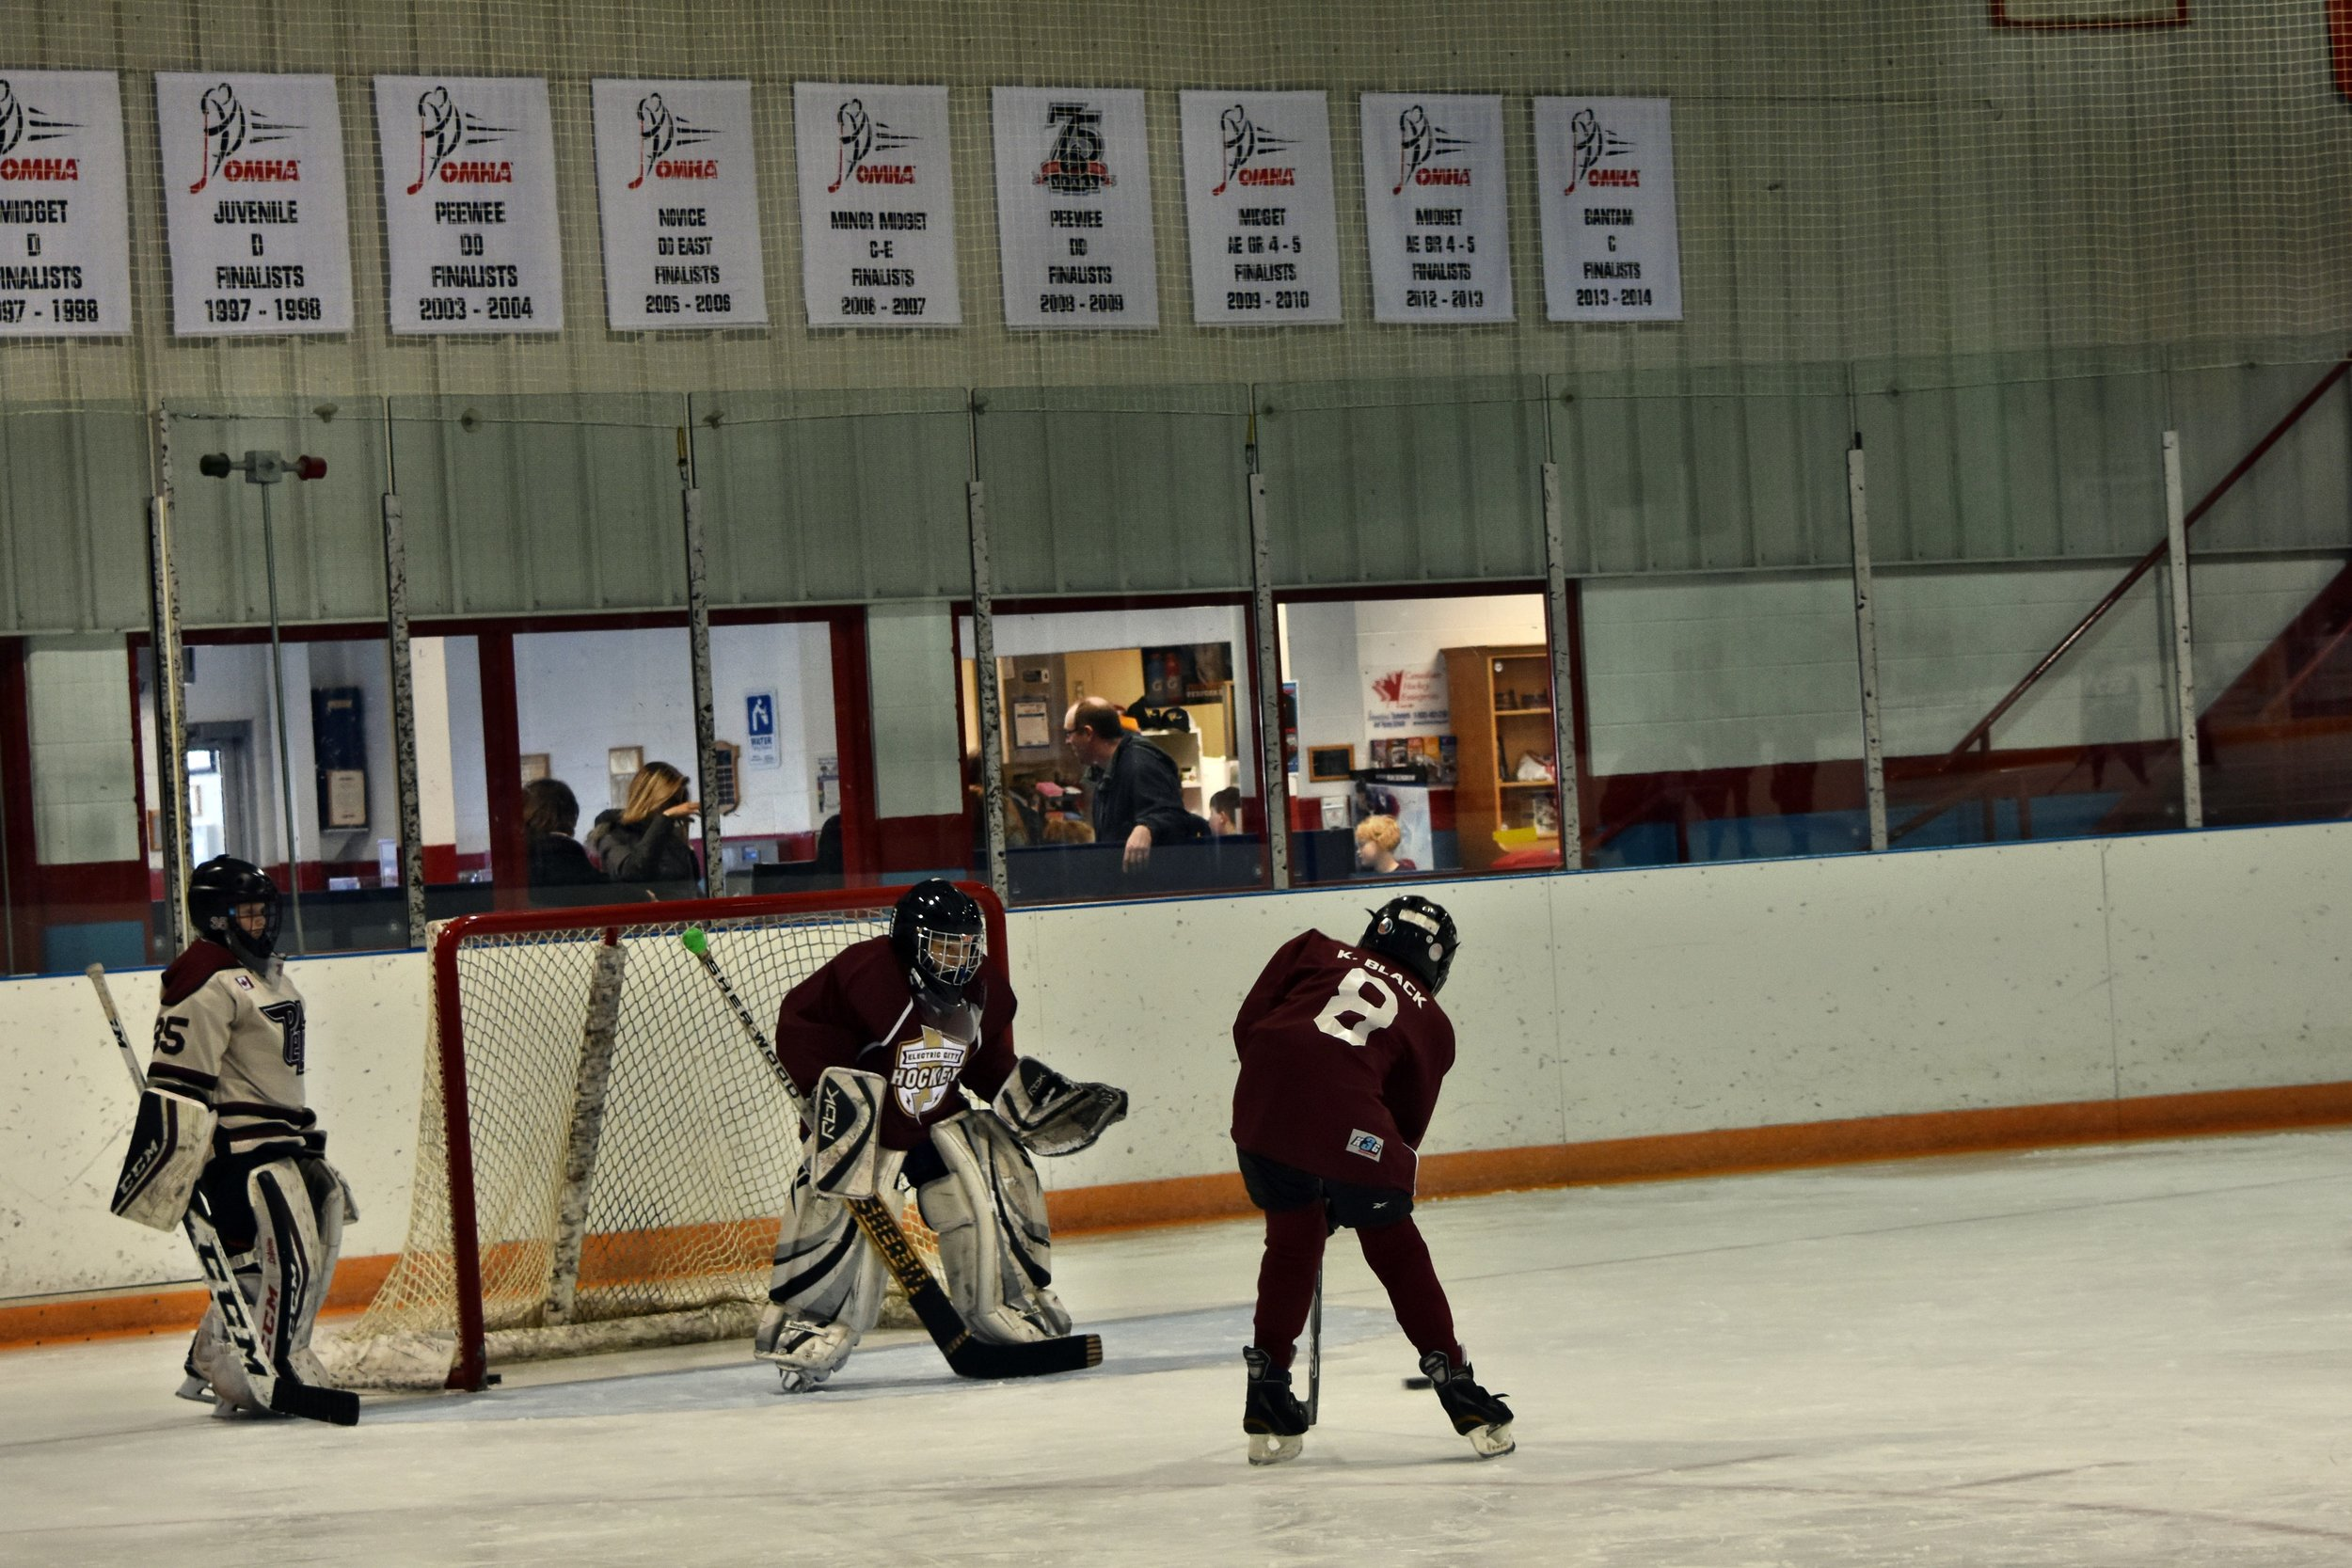 Brody (at left) giving advice to Jacob about goaltending